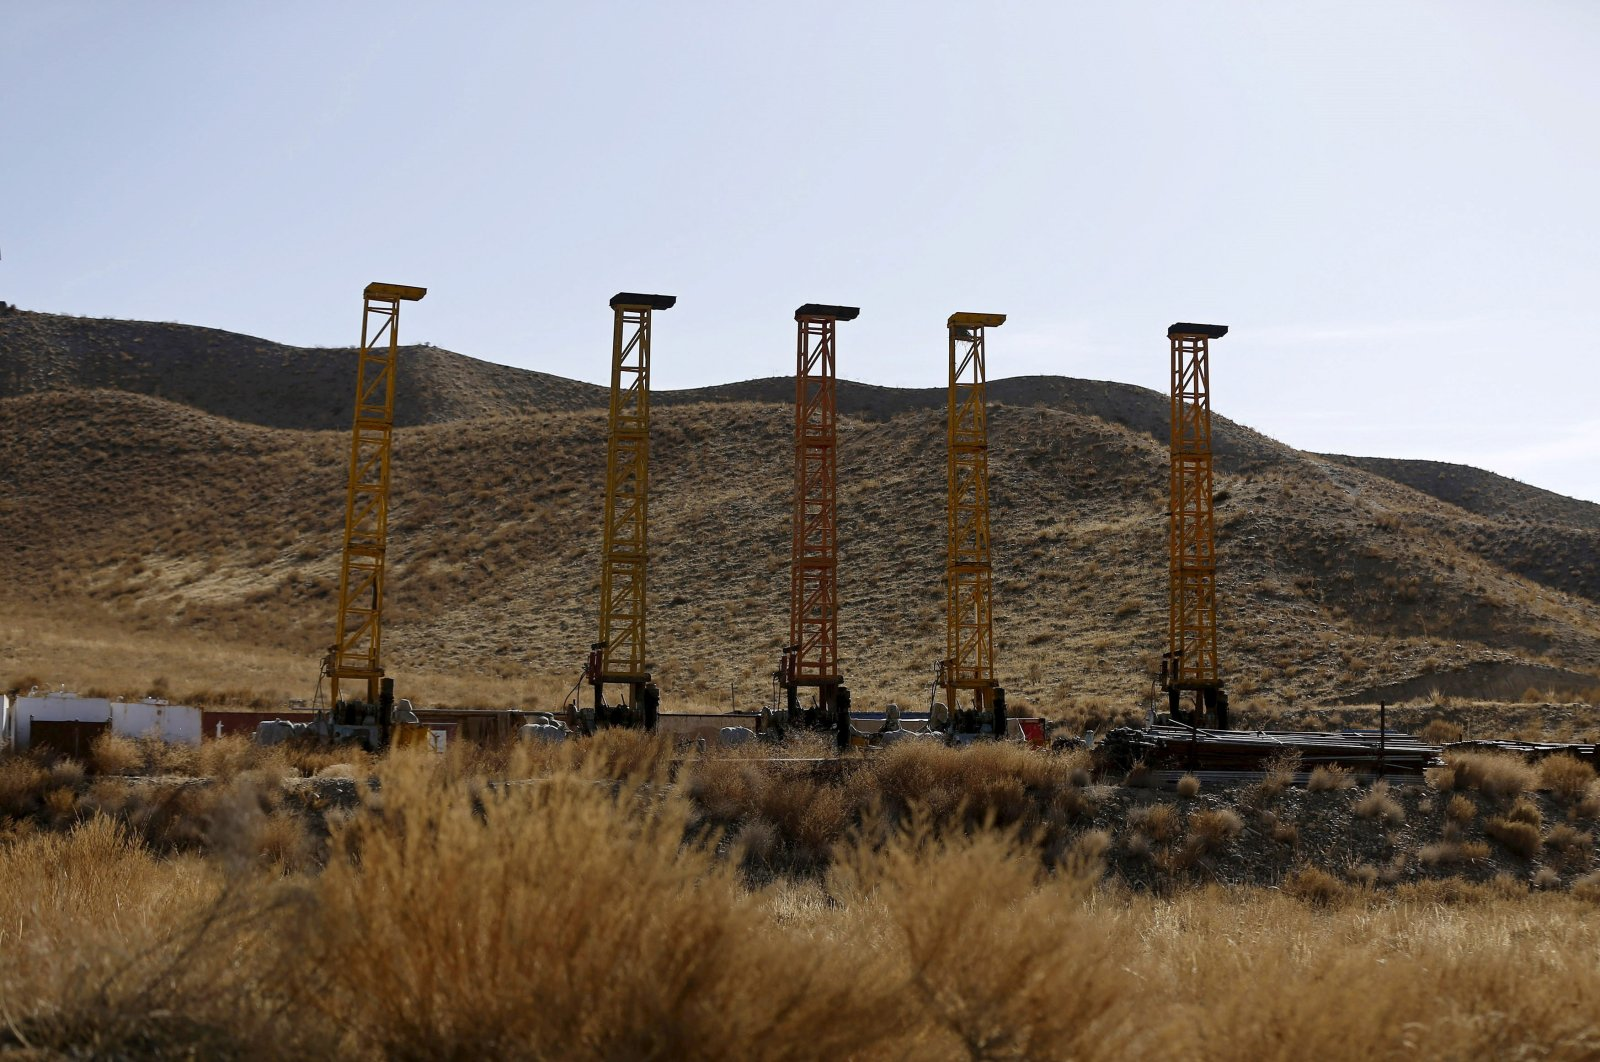 Equipment and machines installed by Chinese excavators are seen near a copper mine in Mes Aynak, Logar province, Afghanistan, Feb. 14, 2015. (Reuters Photo)